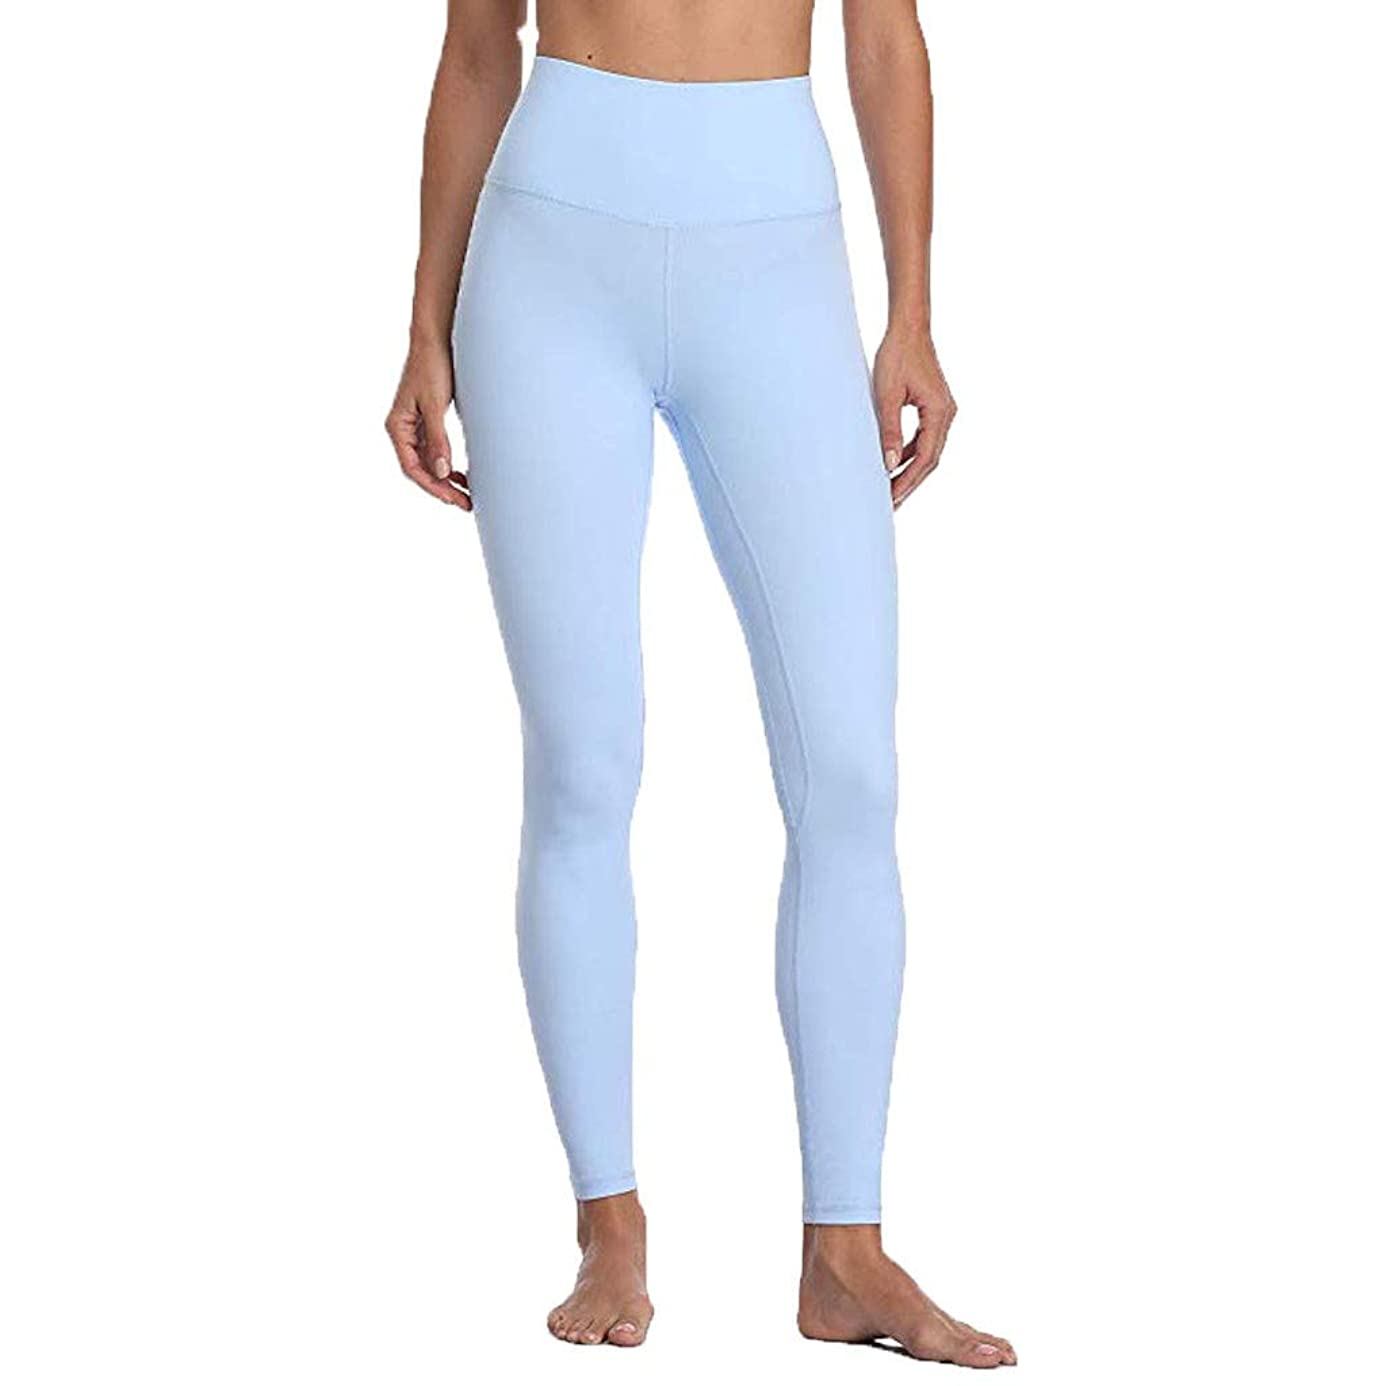 hositor Workout Leggings for Women, Ladies High Waist and Tight Fitness Yoga Pants Nude Hidden Pocket Yoga Pants